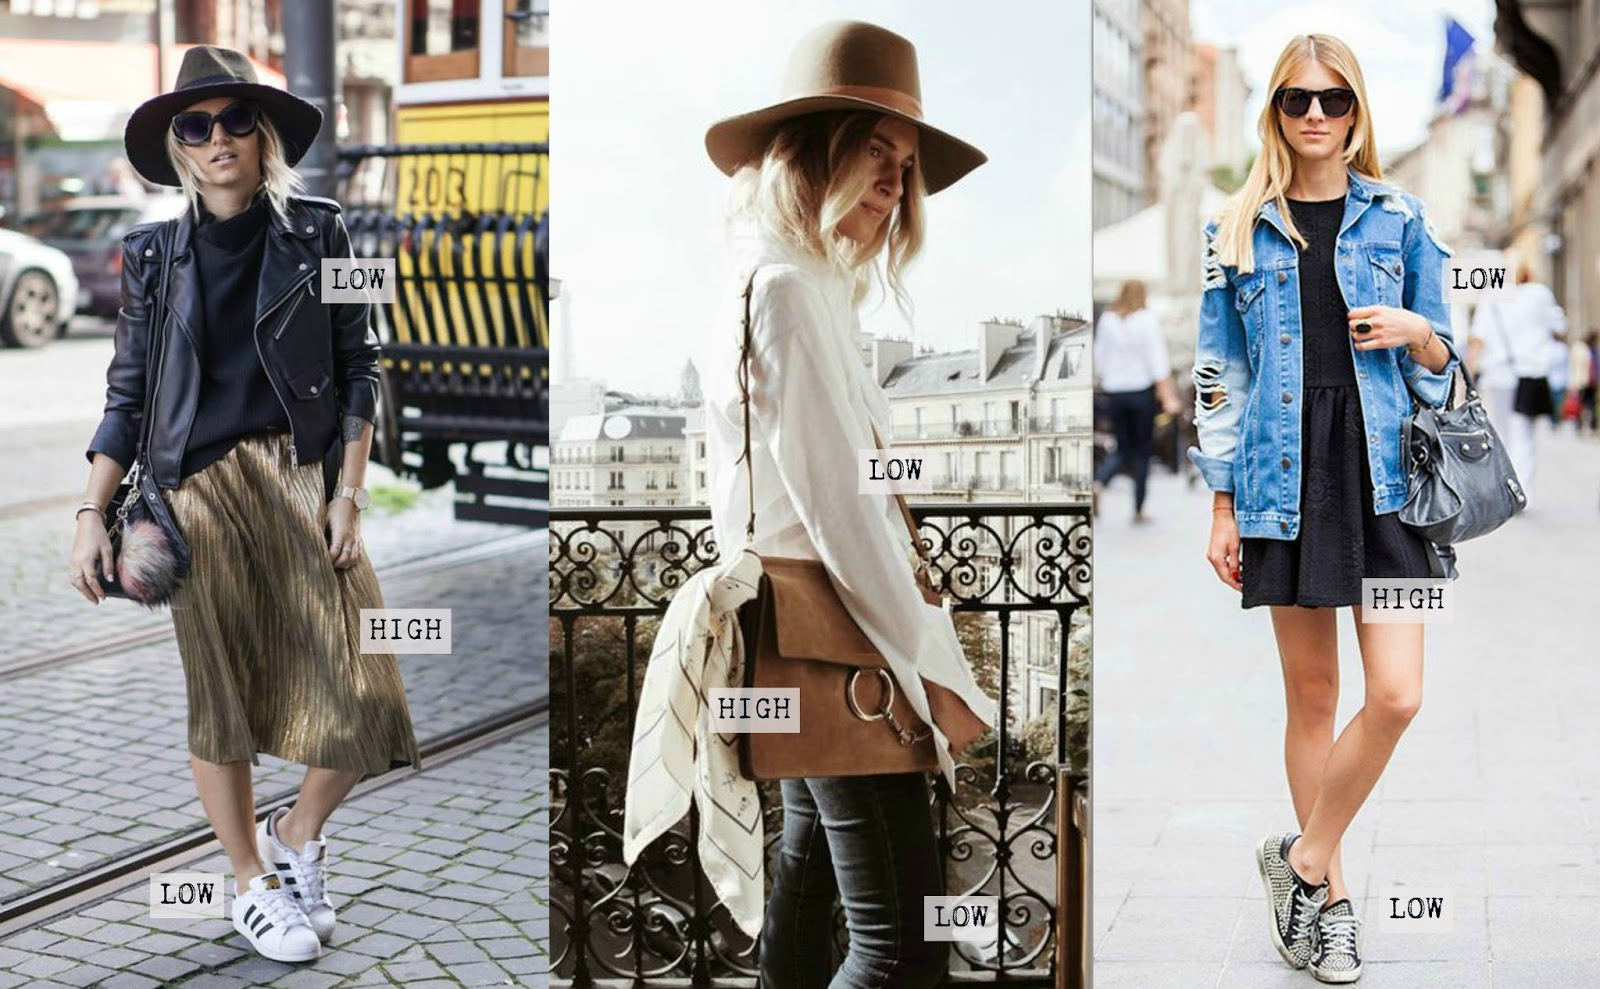 High & low: A new way to dress - Street style inspiration